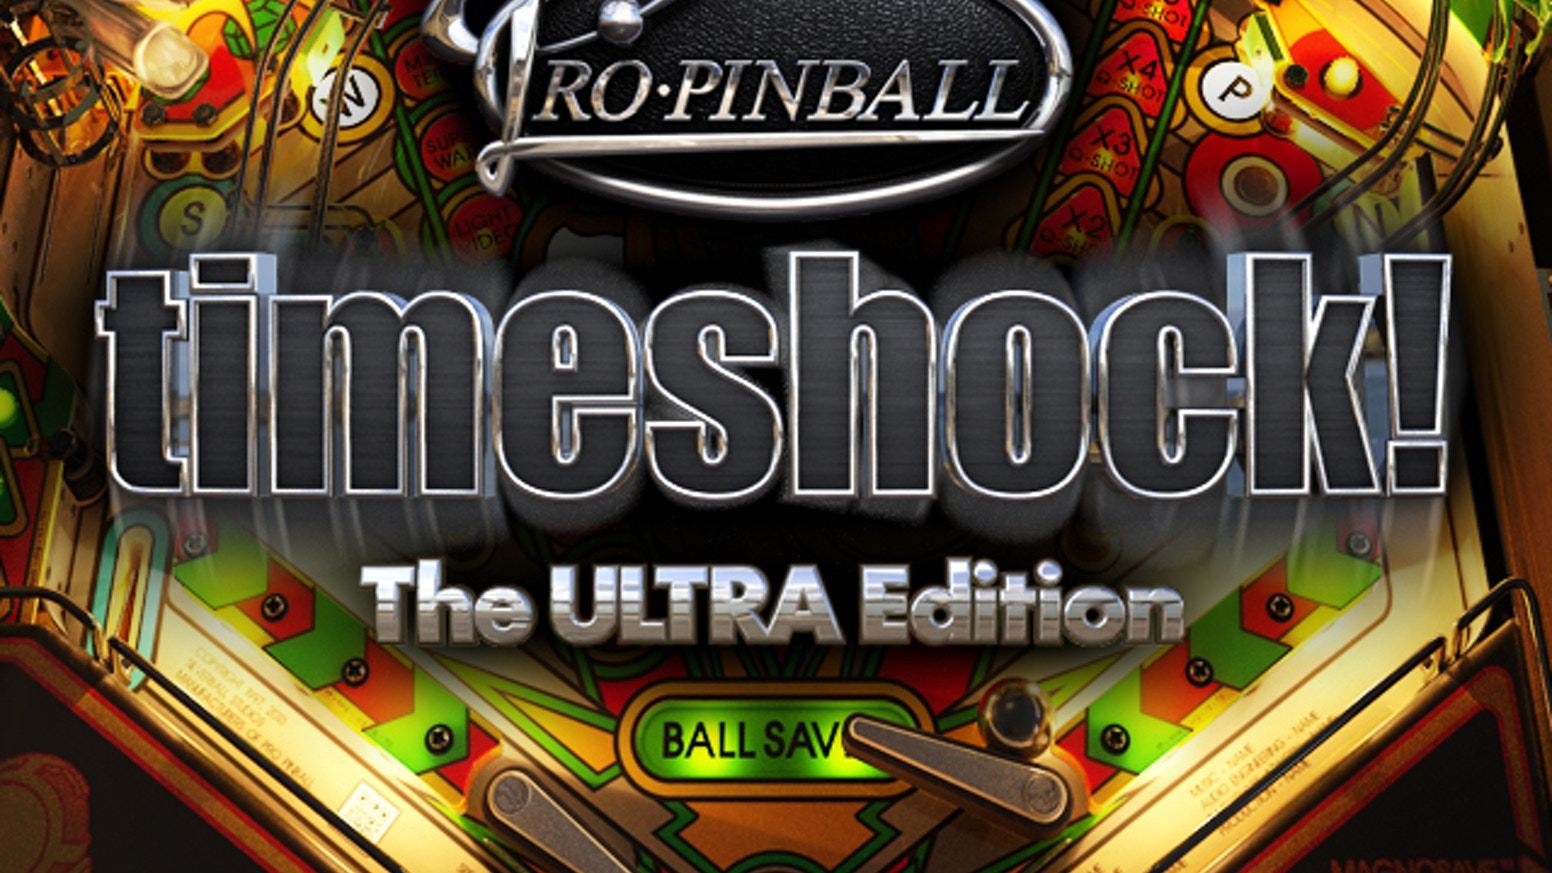 Pro Pinball: Timeshock! - The ULTRA Edition by Barnstorm